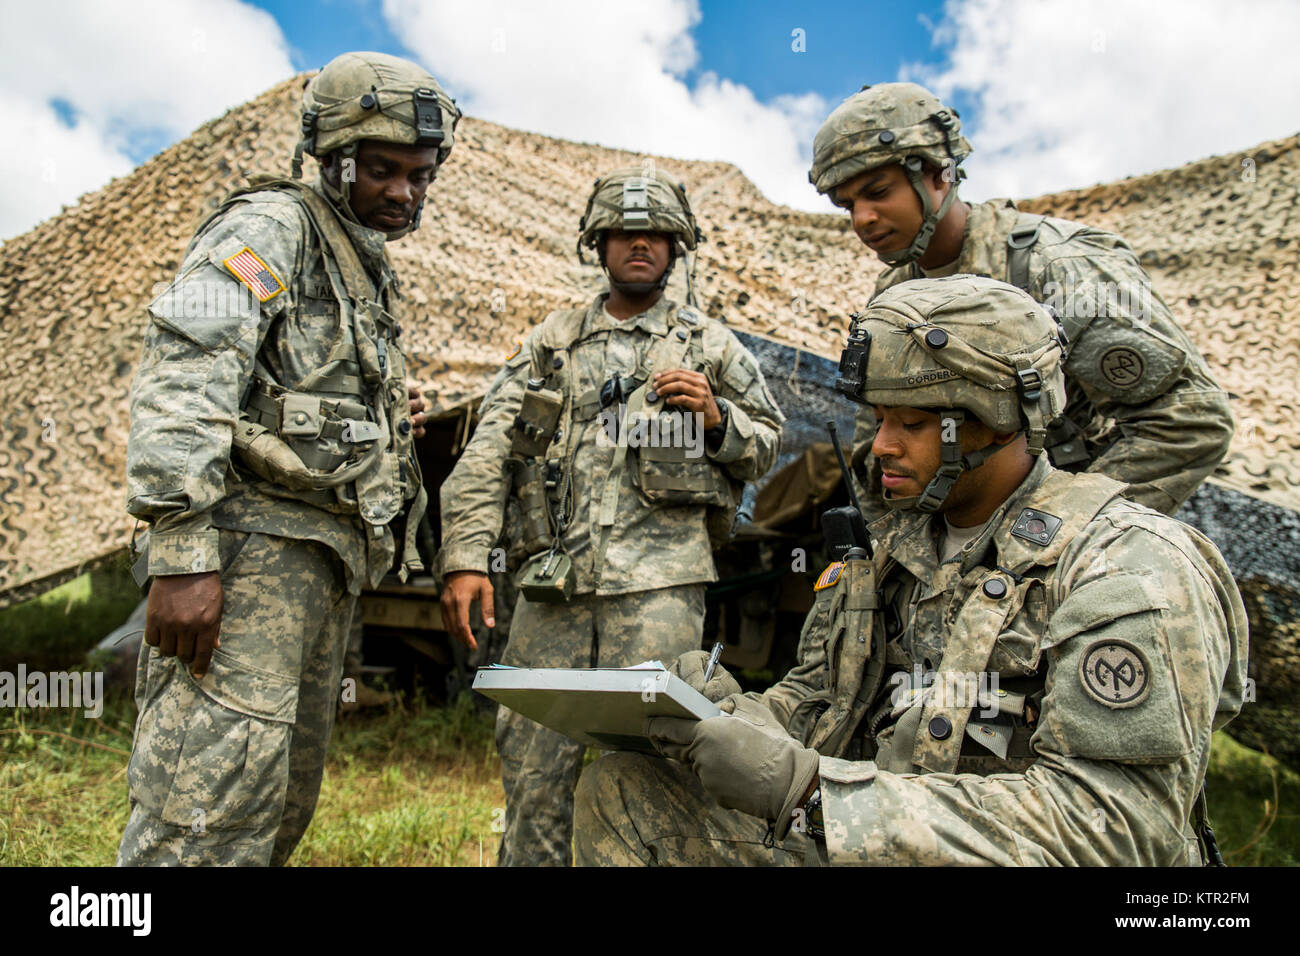 U.S. Army Spc. Jose Cordero, a radiotelephone operator with Battery B, 1st Battalion, 258th Field Artillery Regiment, Stock Photo